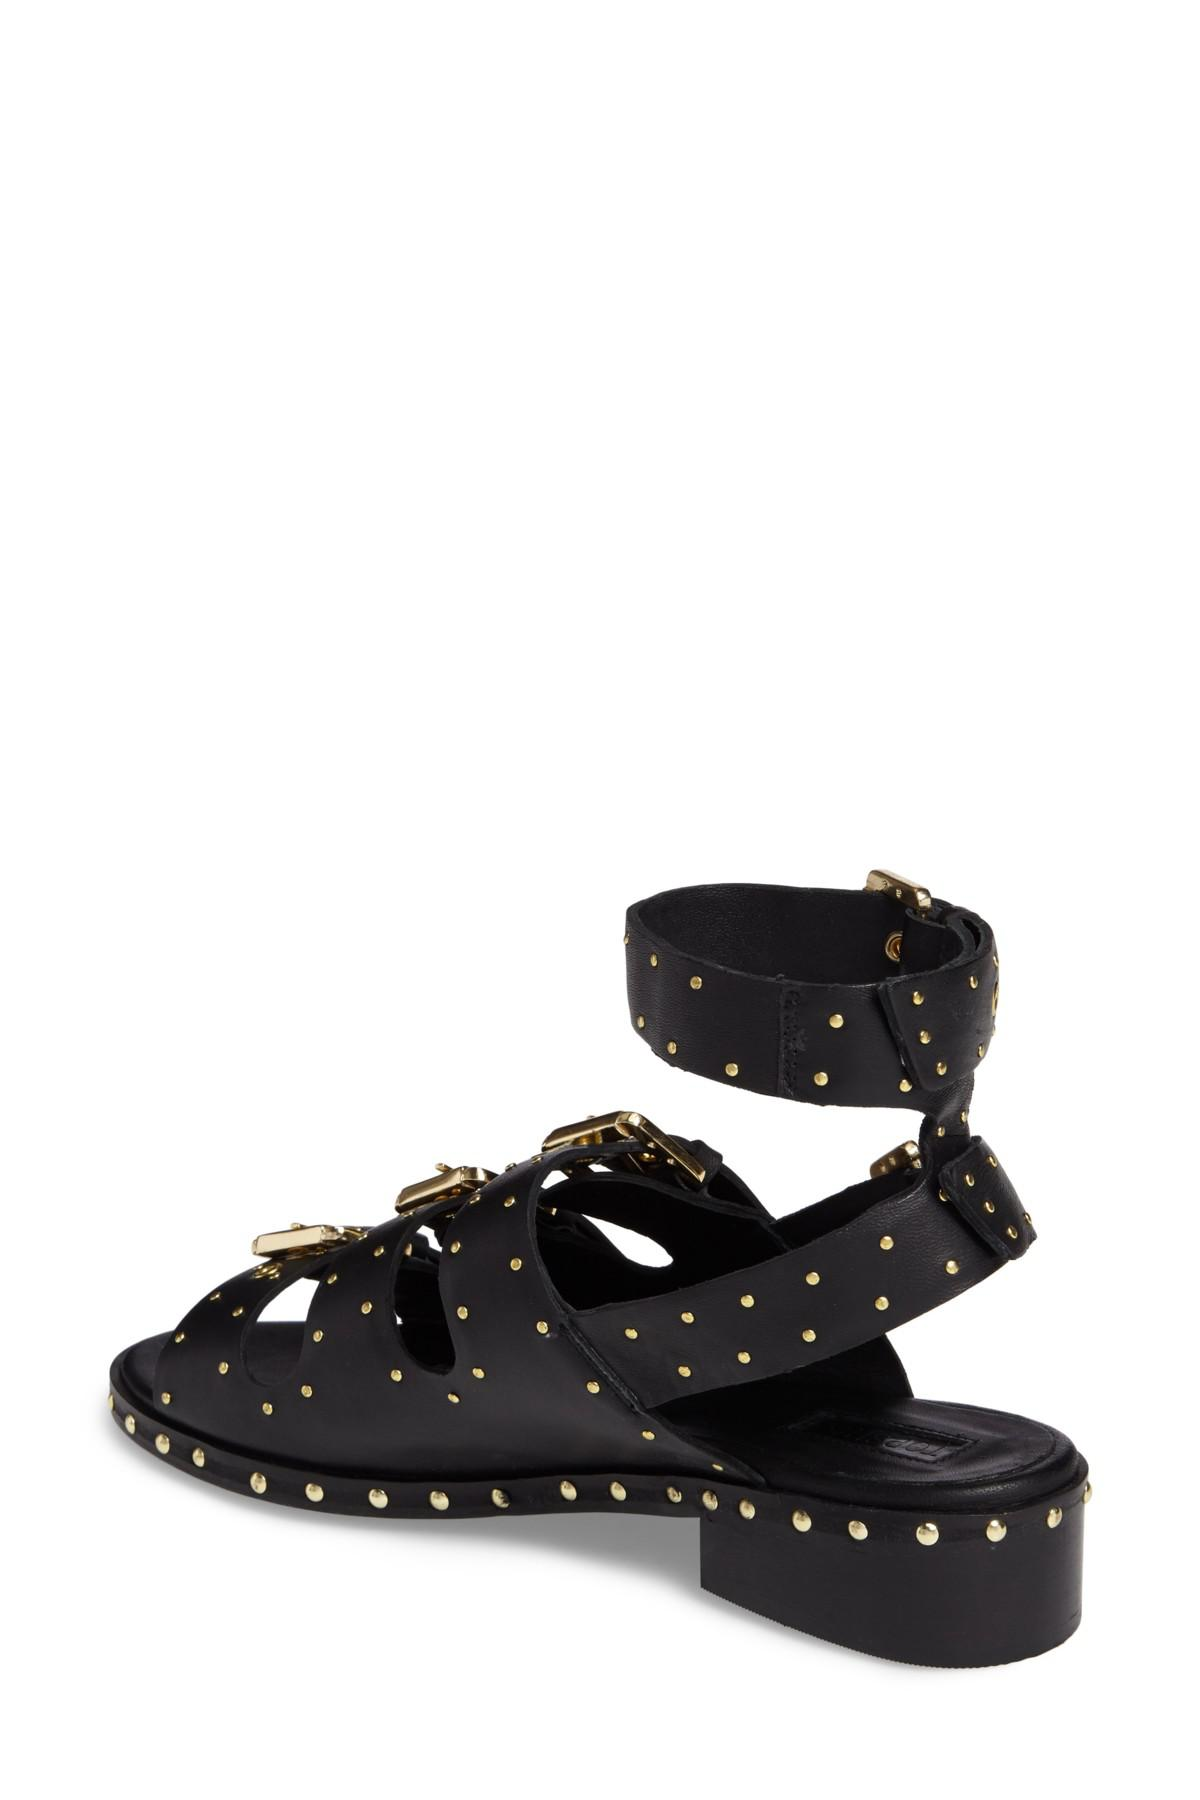 TOPSHOP Leather Frank Studded Buckle